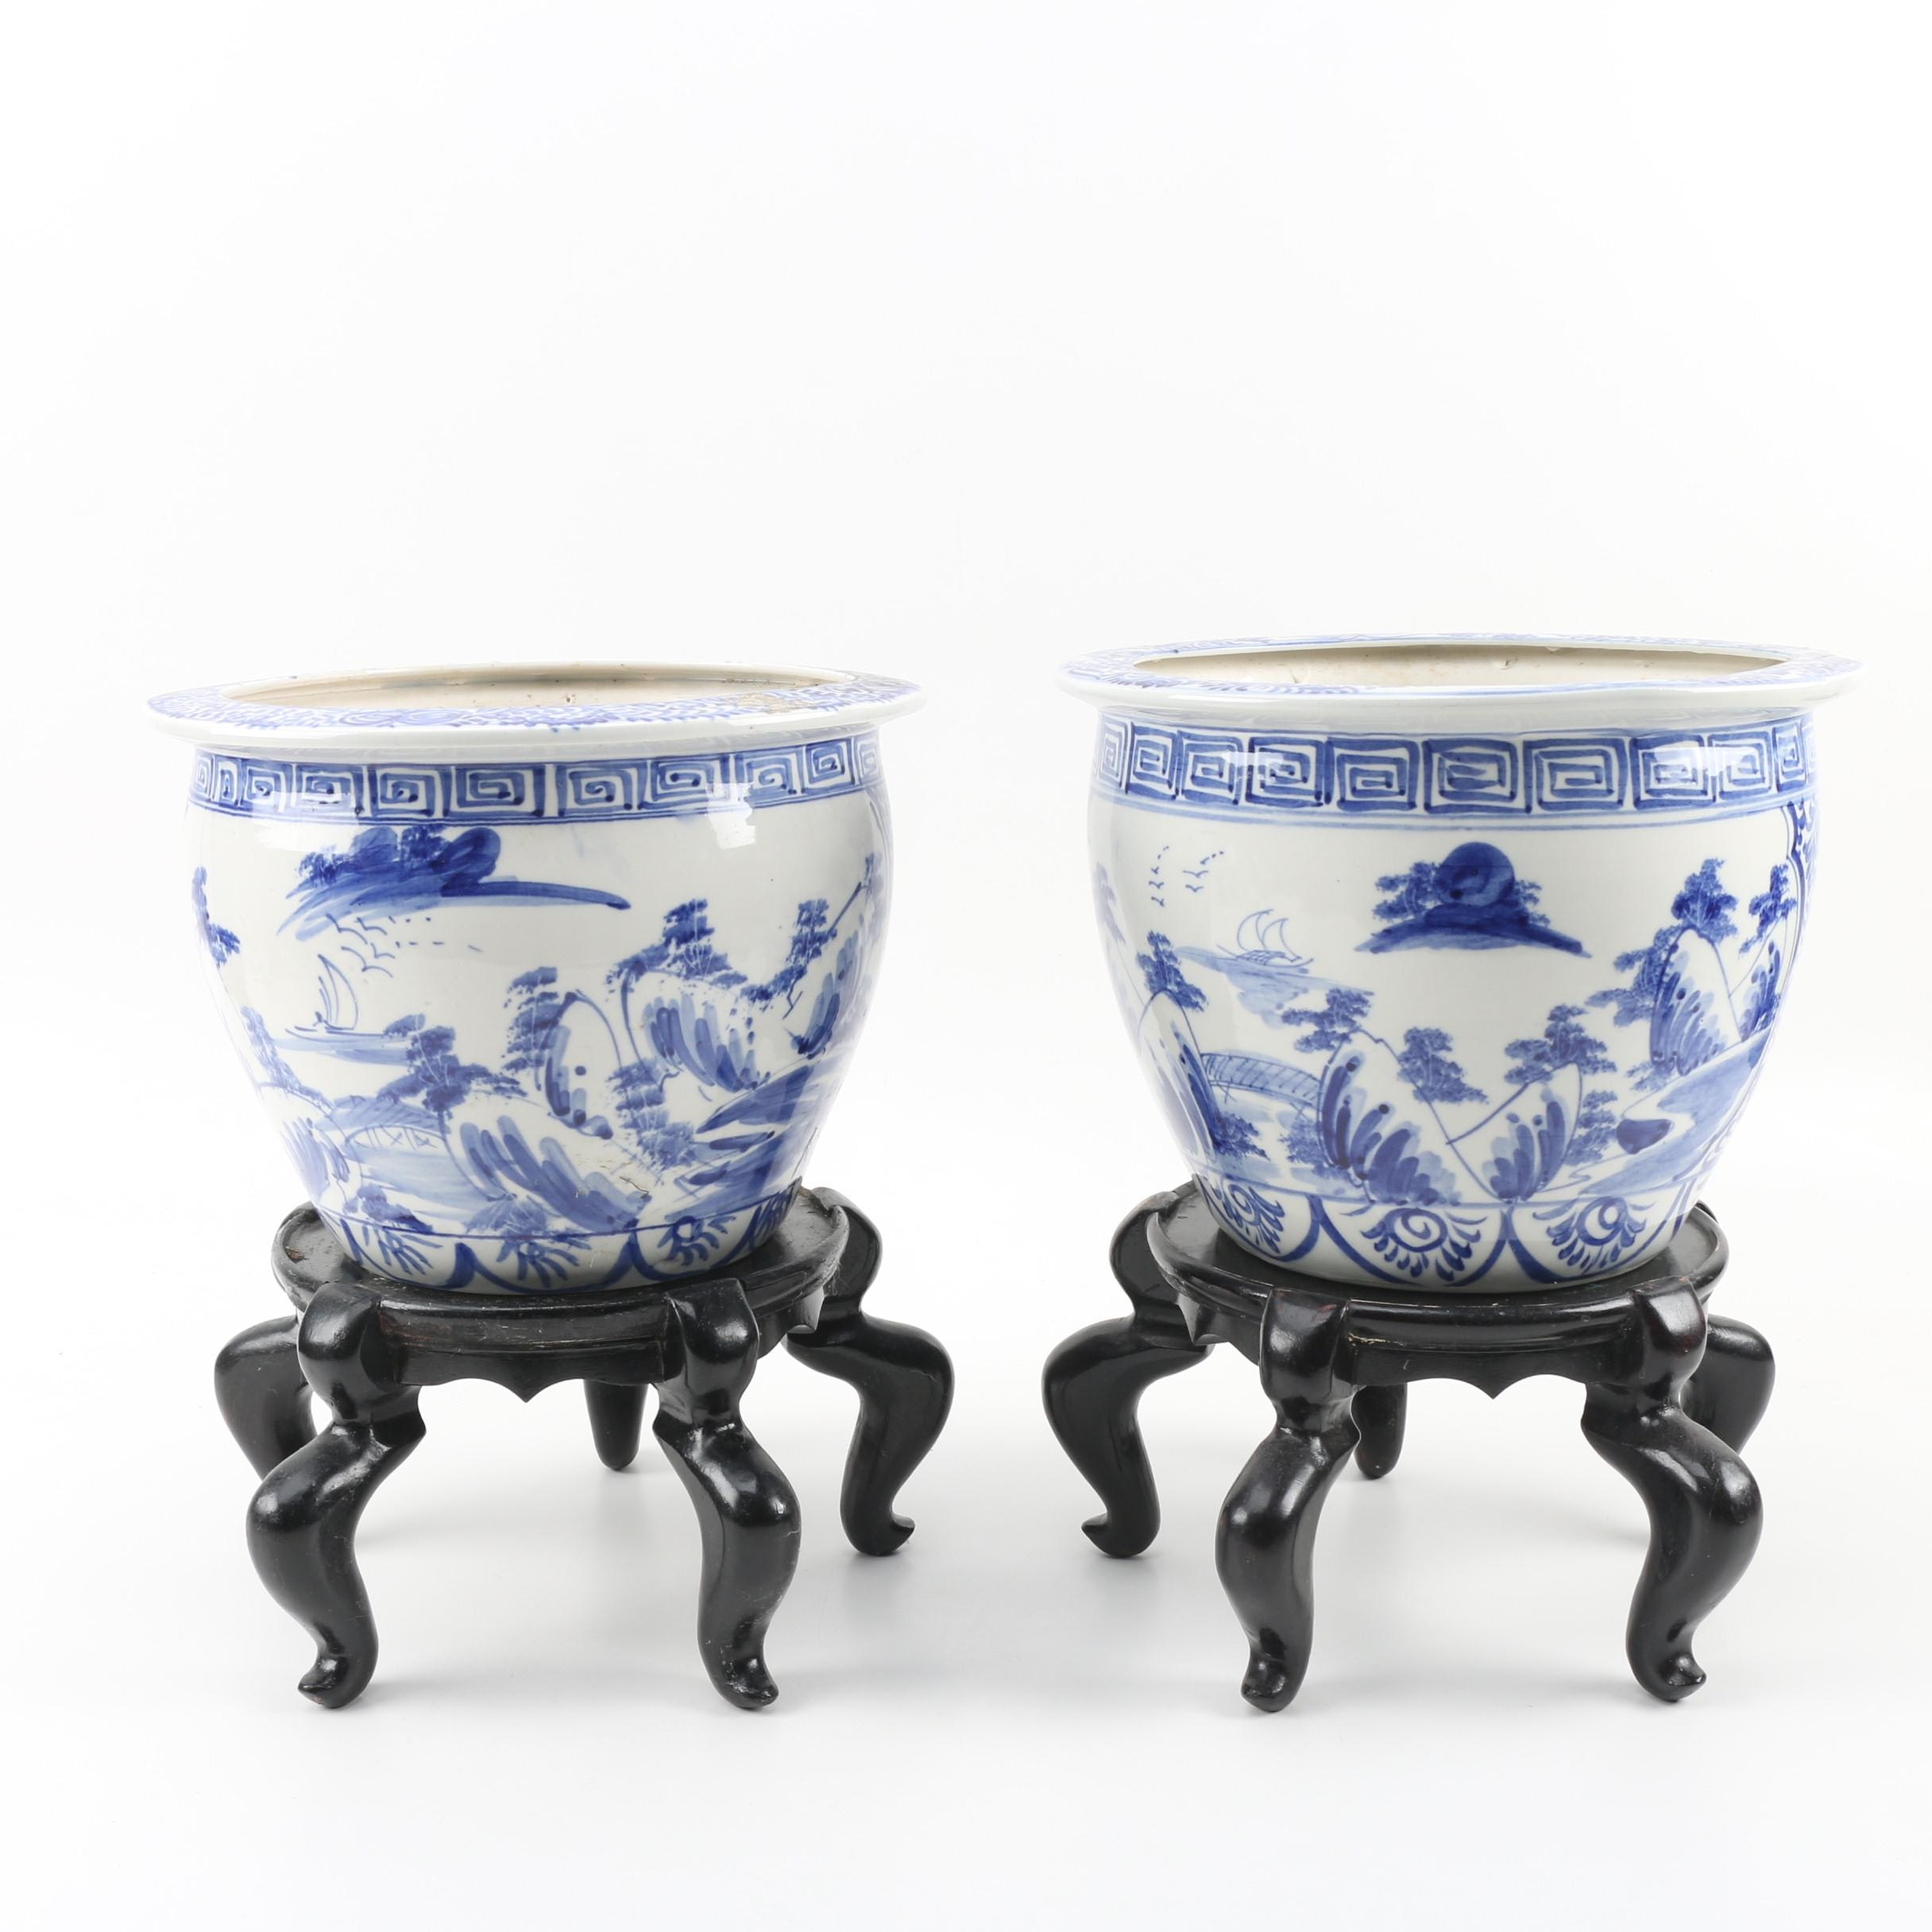 Chinese Porcelain Fish Bowl Planters with Wood Stands